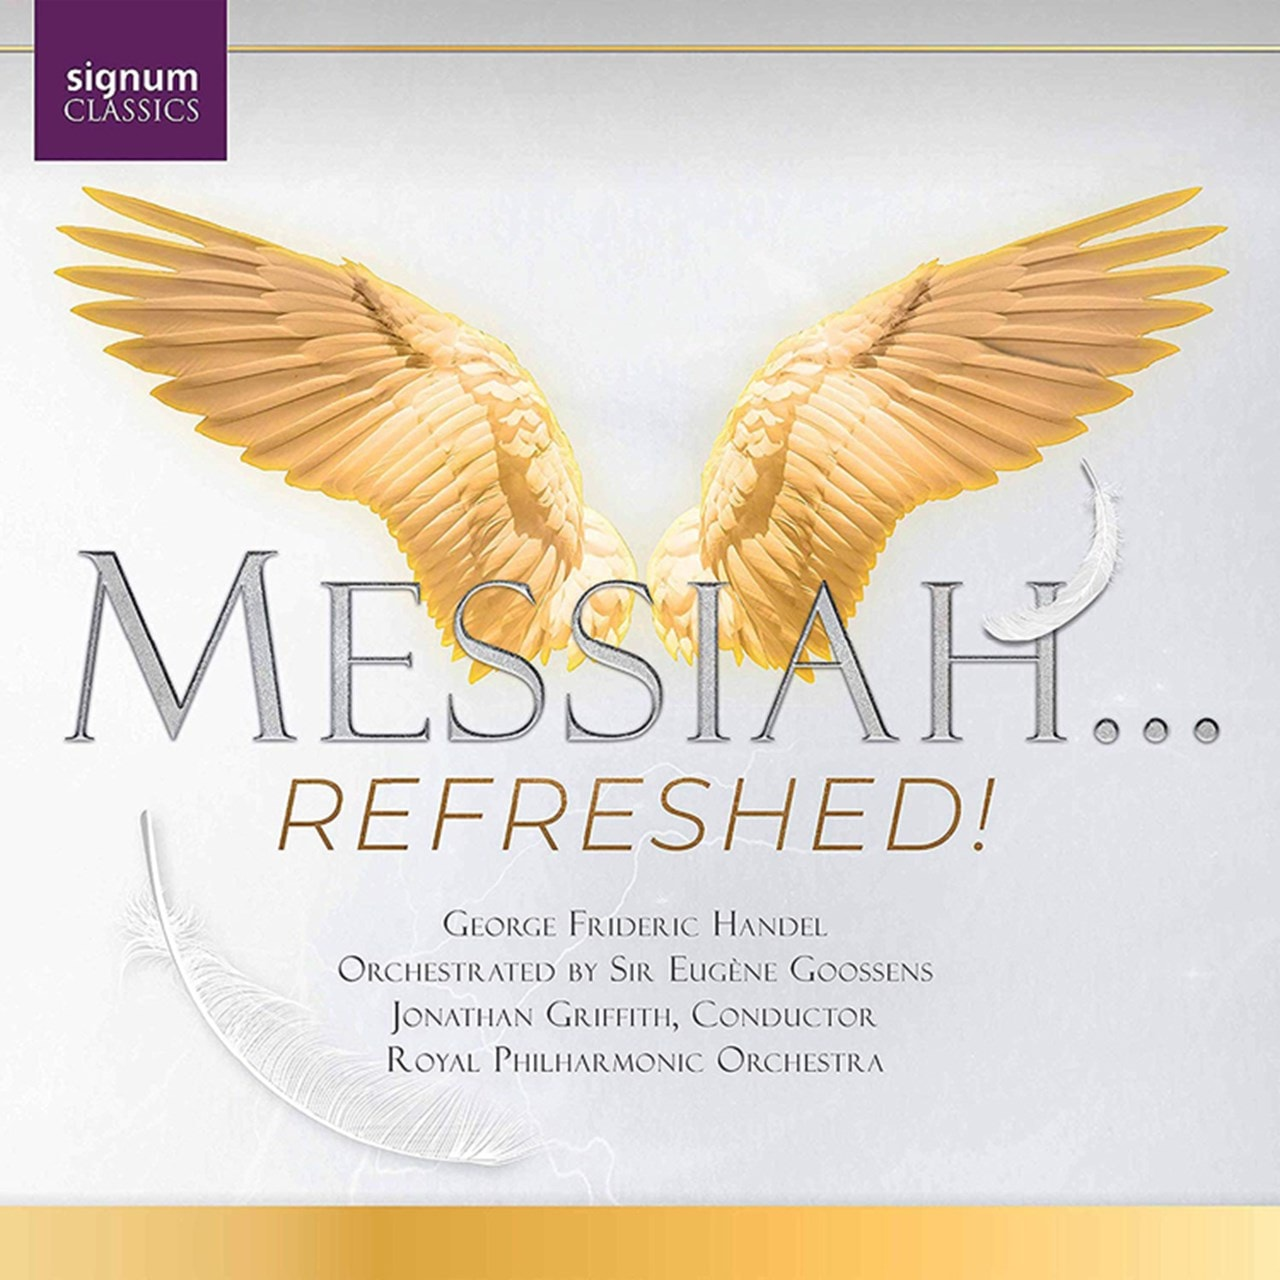 Messiah...refreshed! - 1